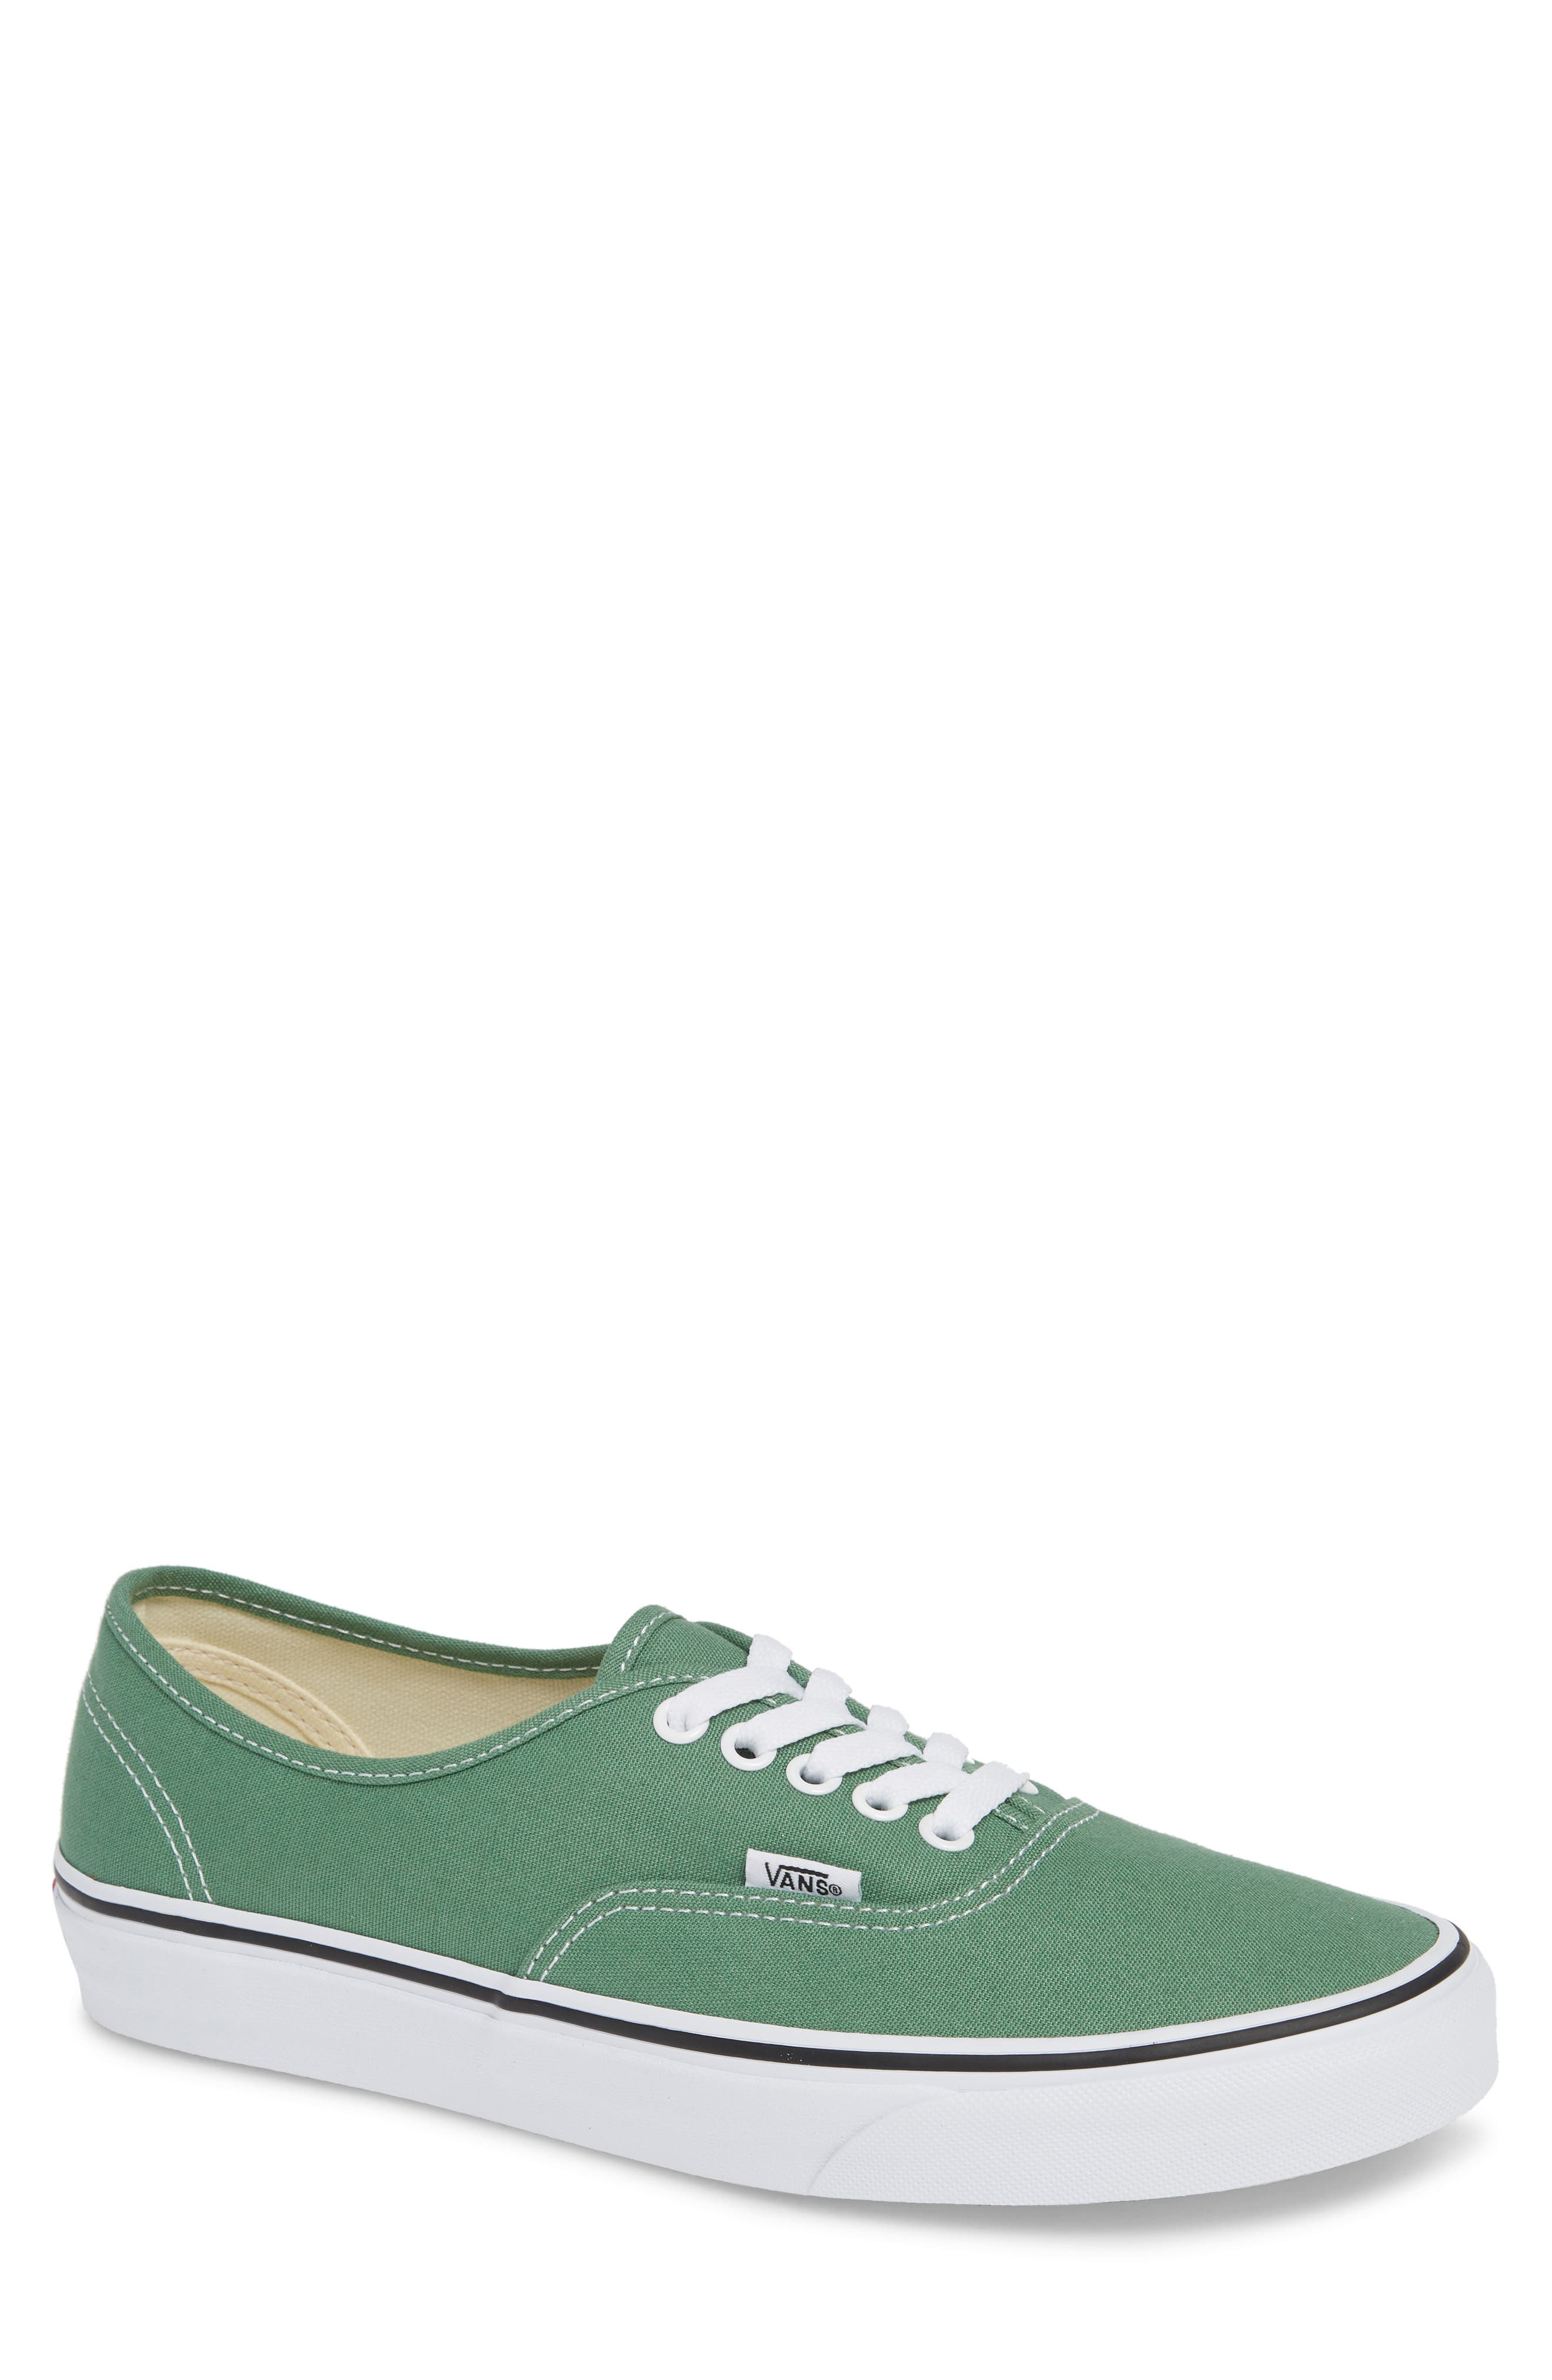 VANS 'Authentic' Sneaker, Main, color, DEEP GRASS GREEN/ TRUE WHITE